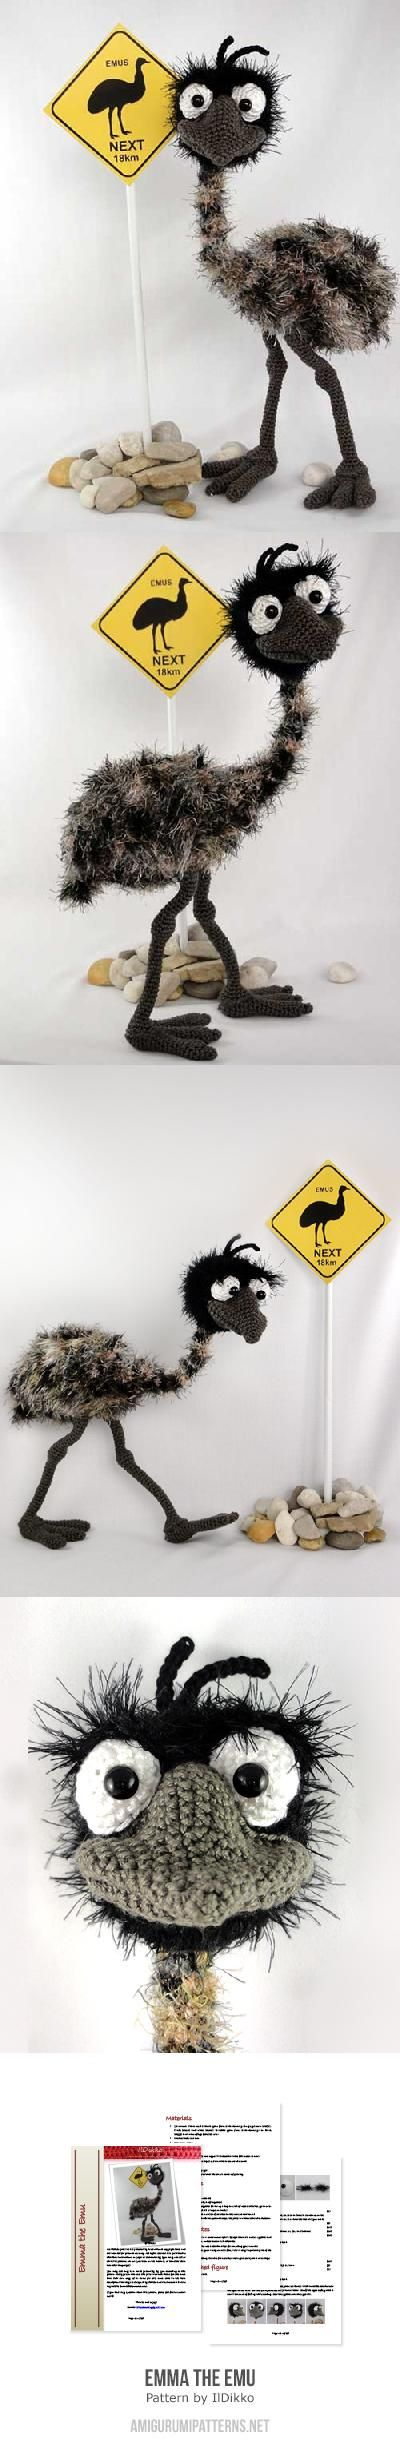 Emma the Emu $ 6.80 English Pattern by IlDikko. Includes step-by-step pictures.